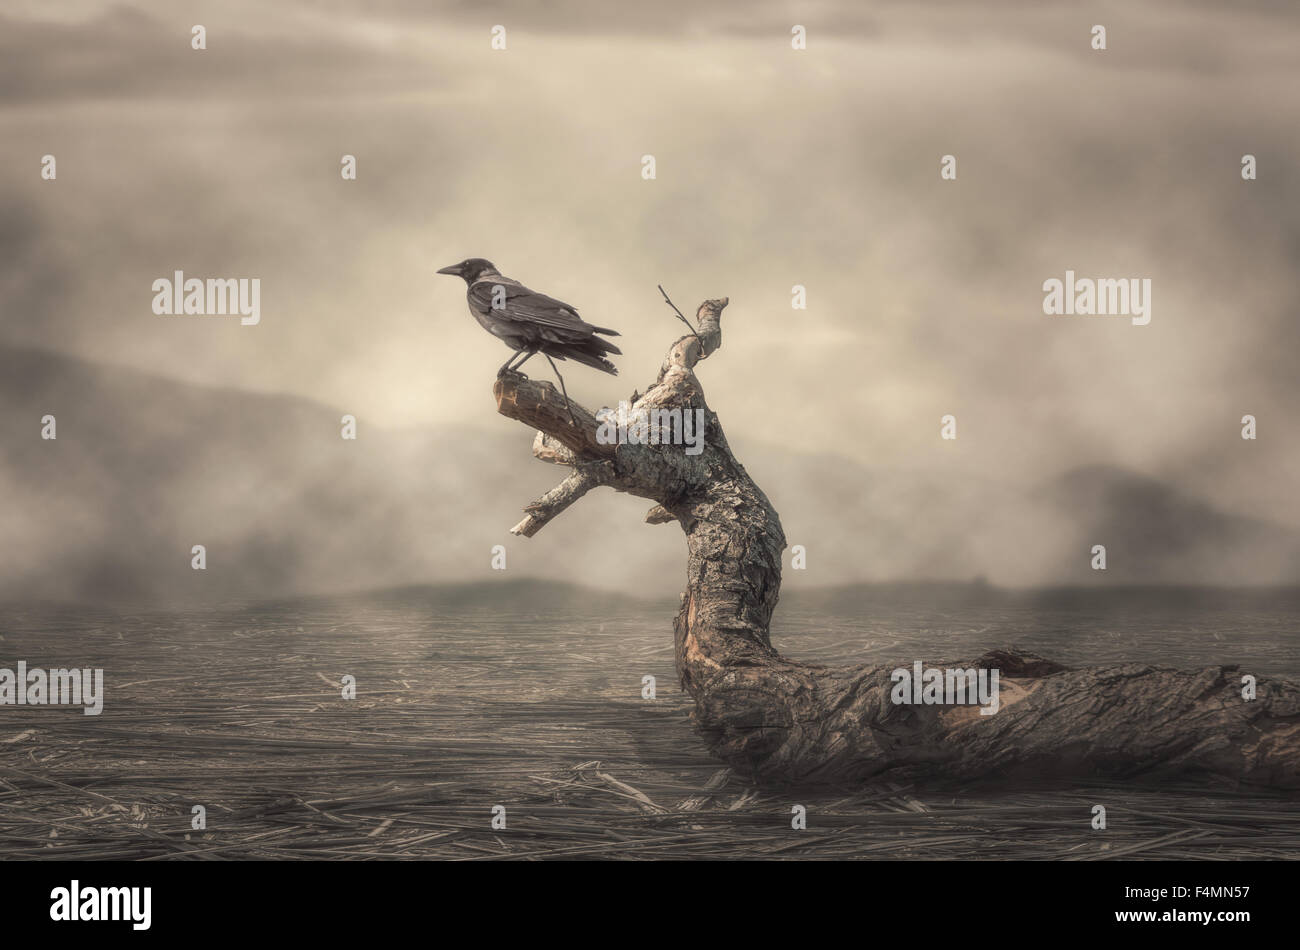 The crow perching on tree in misty weather - Stock Image